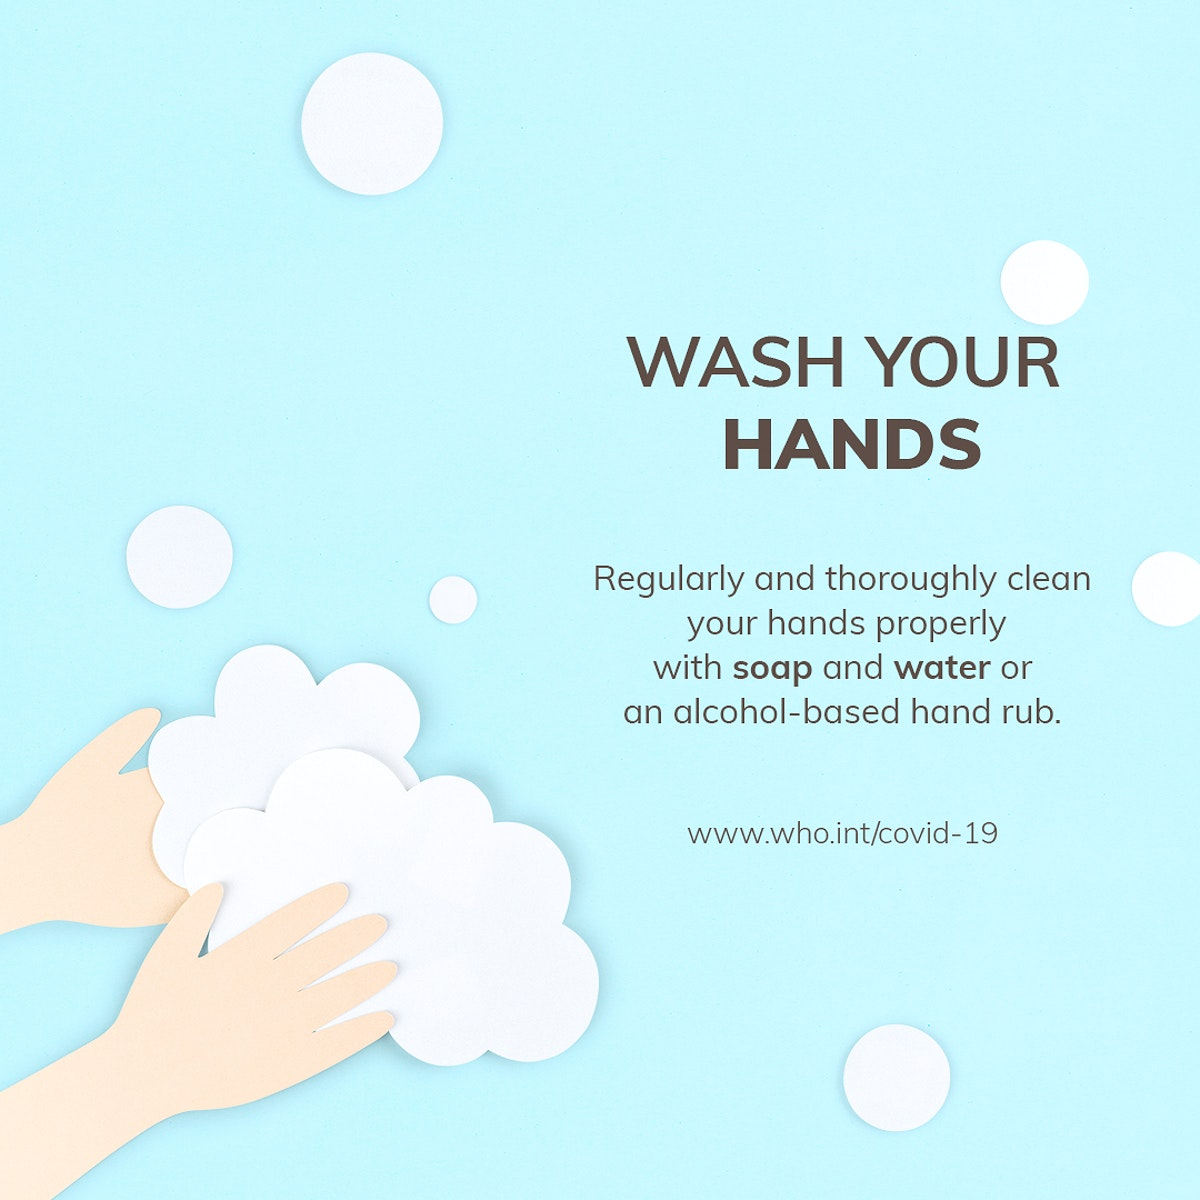 Wash your hands regularly during coronavirus pandemic paper craft social template source WHO